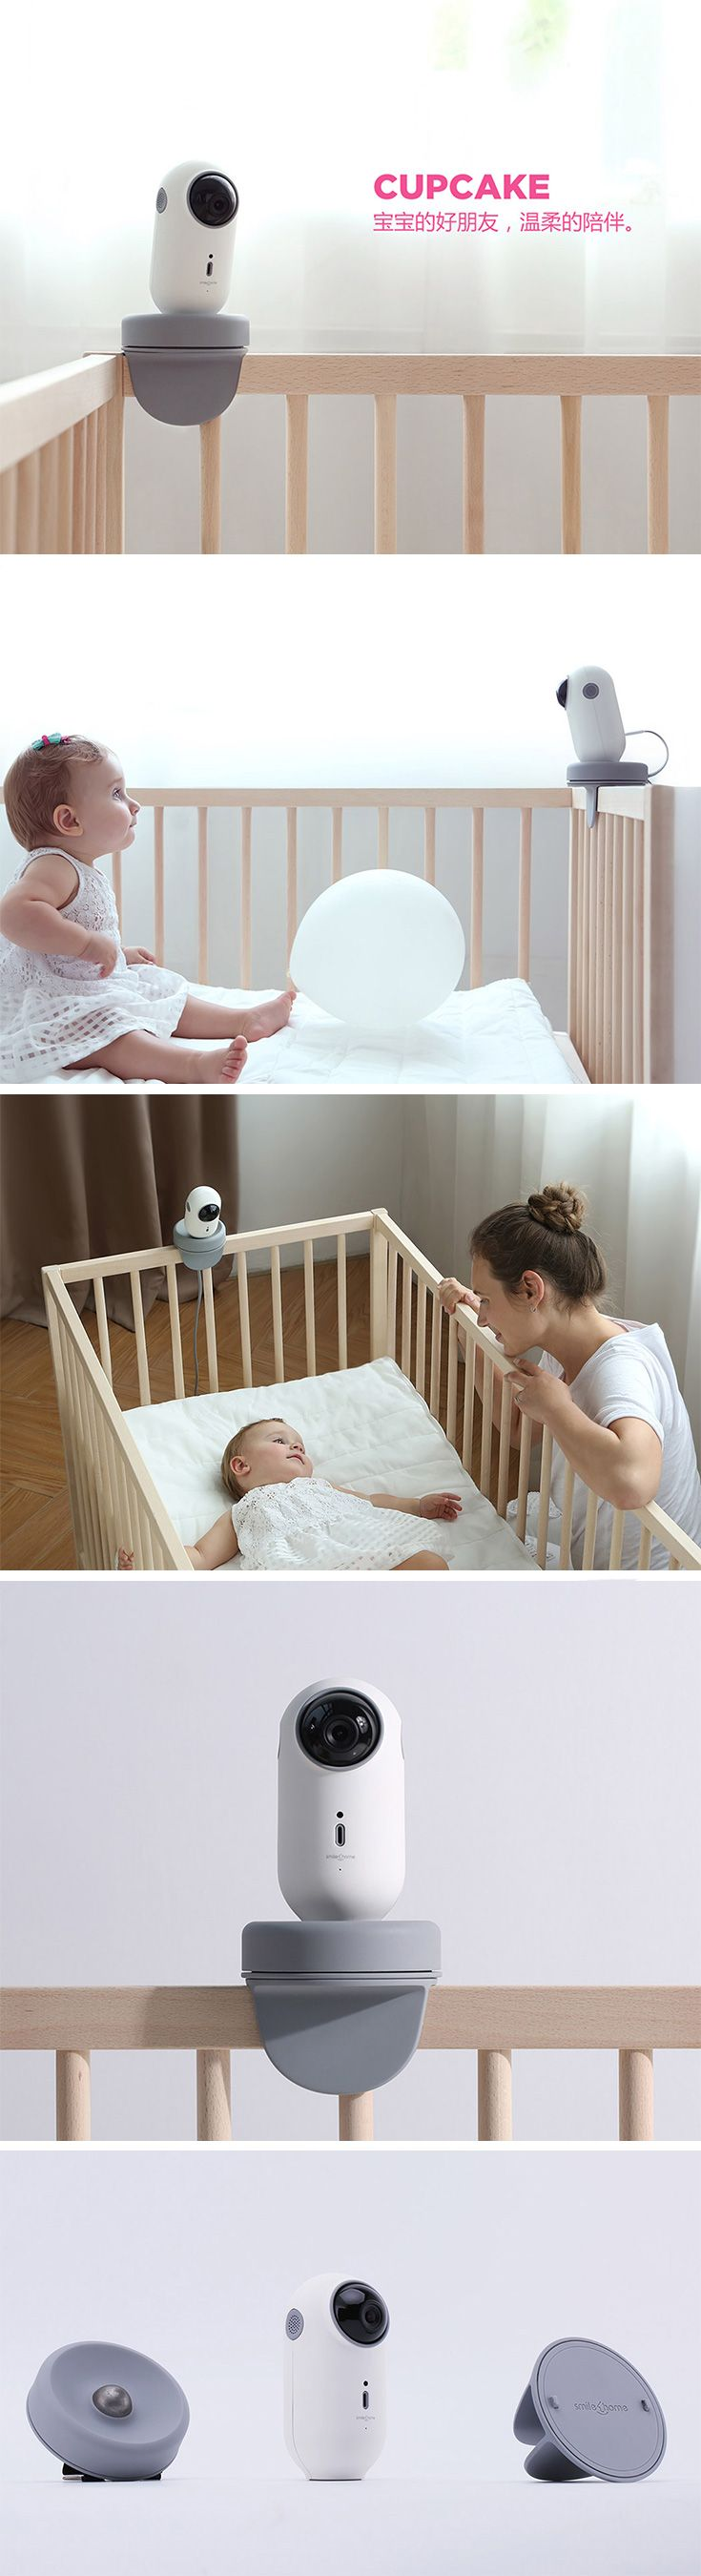 Cupcake is a simplistic and convenient twist on the nanny cam that helps parents stay up-close-and-personal with baby even when they're not in the room. While it can be used just about anywhere, it's also able to attach directly on the crib with a specialized mount.